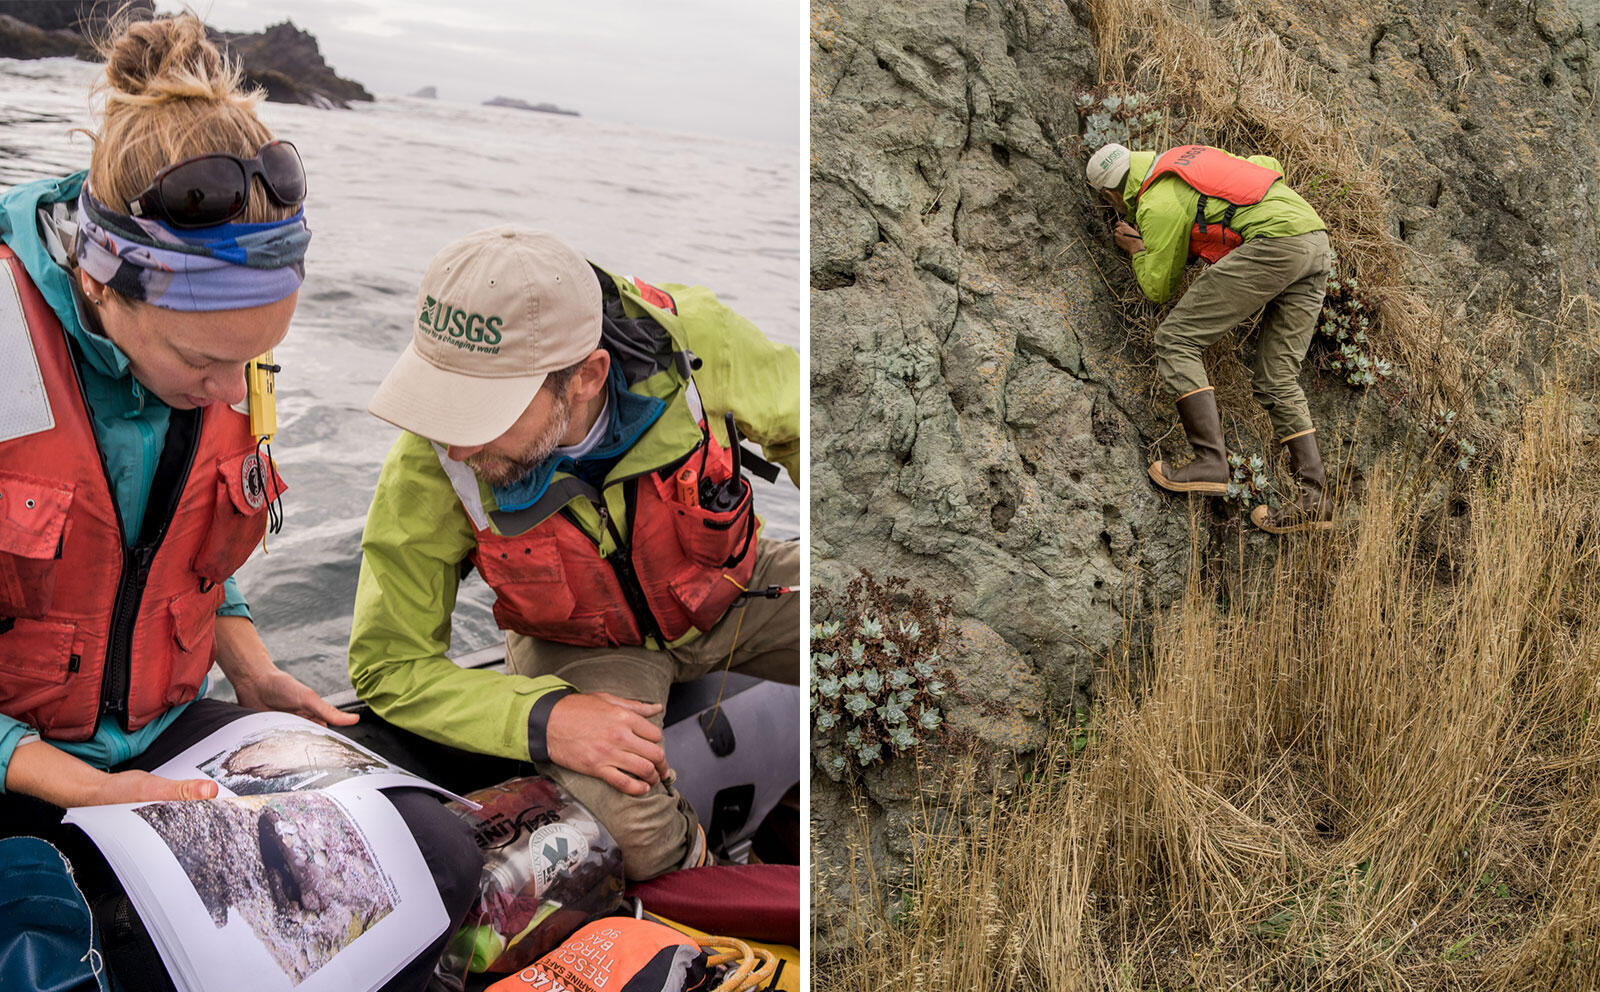 On small stacks of the coast of Northern California, the scientists check burrows for late-season chicks. Photos: Jim McAuley